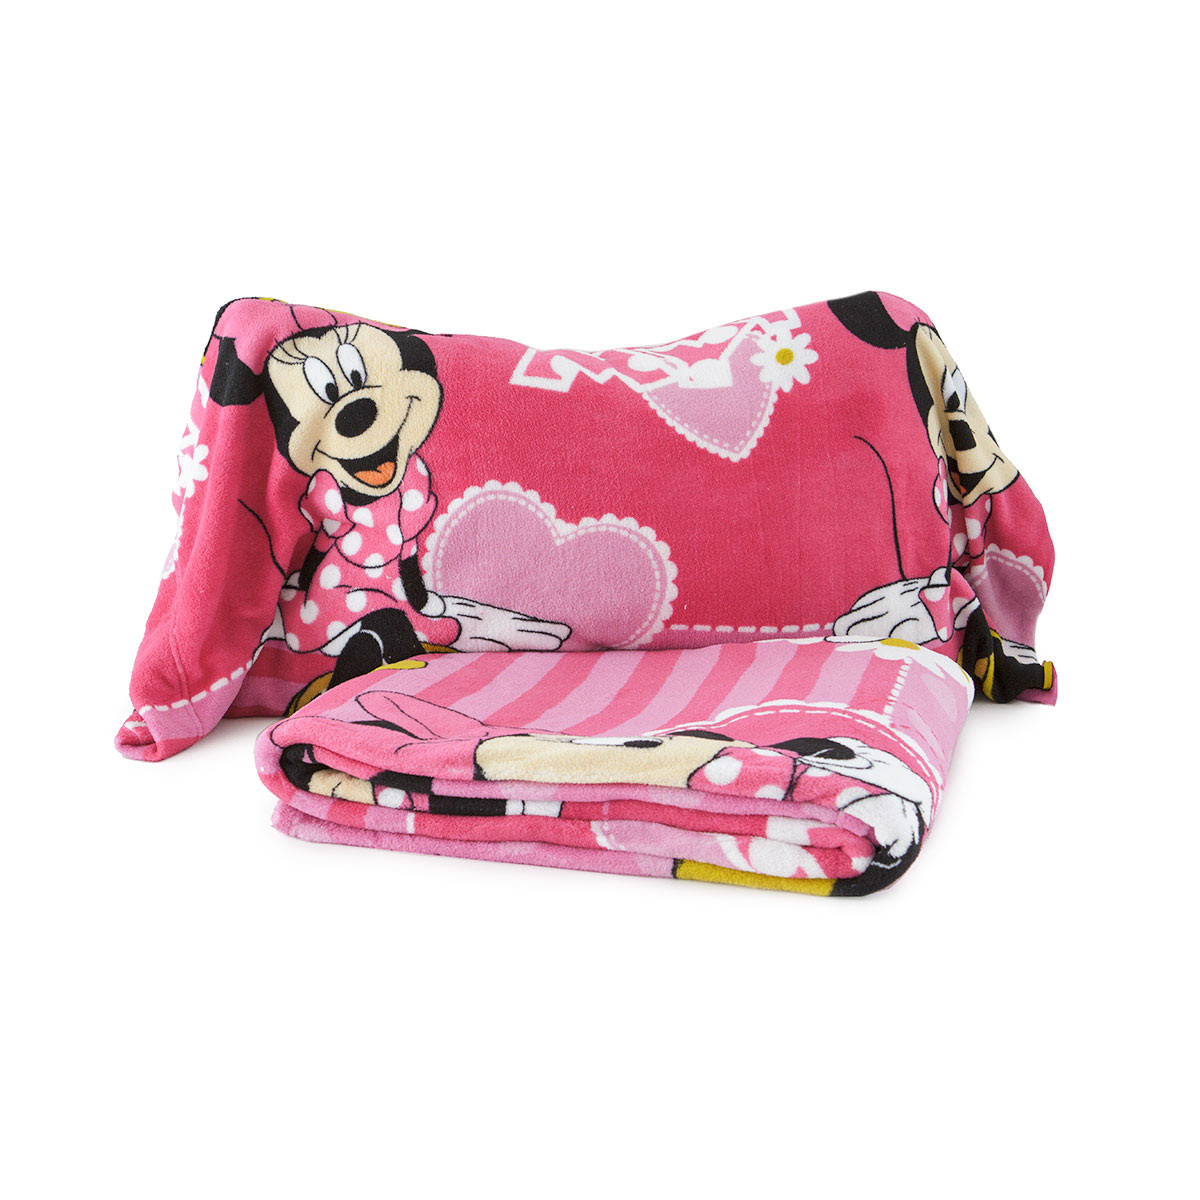 Lenzuola in pile minnie disney completo per letto singolo - Completo lenzuola letto singolo ...